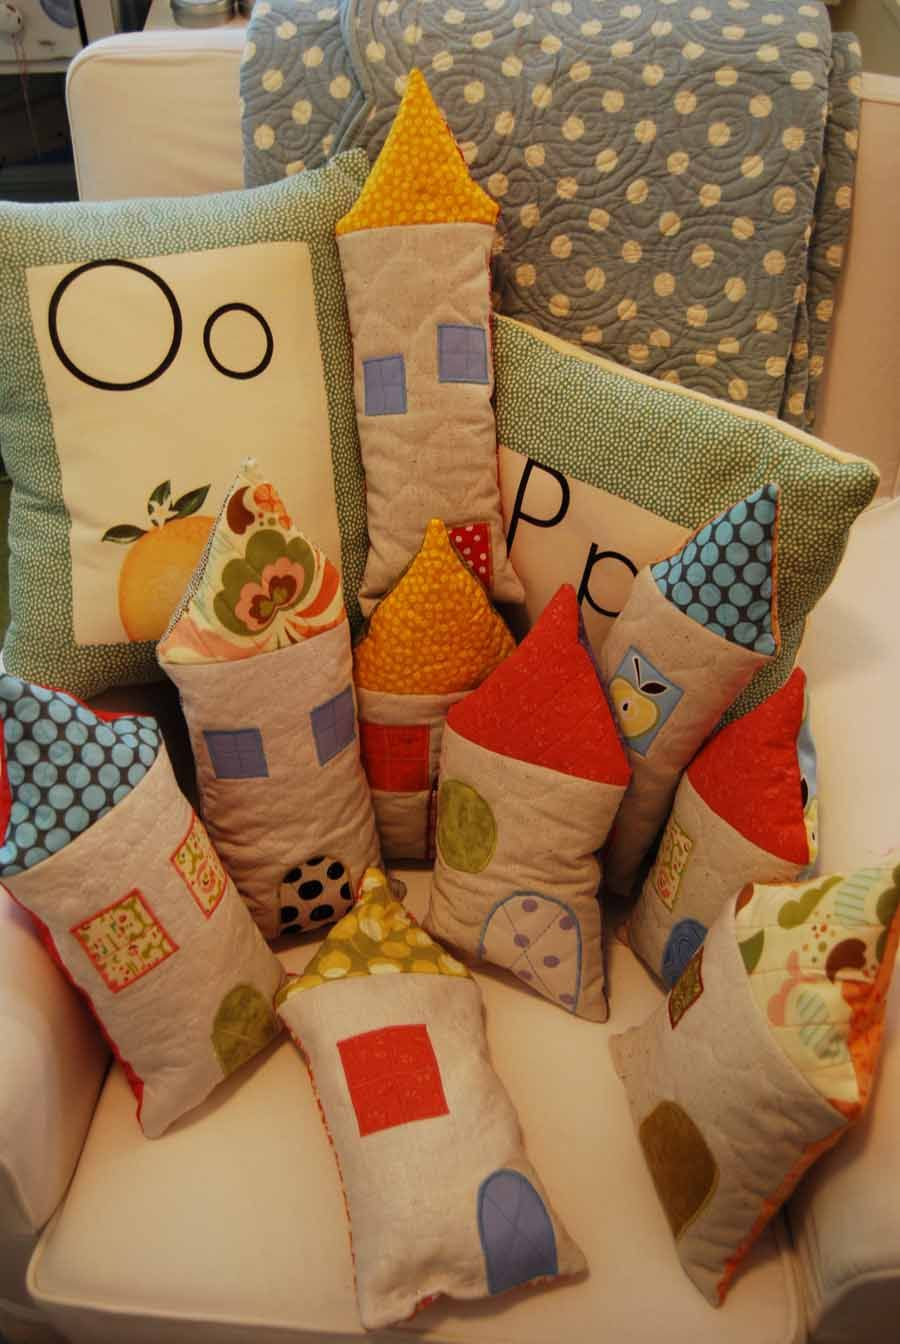 cute pillow houses. No tutorial given, but I'm sure it would be easy to whip these up.